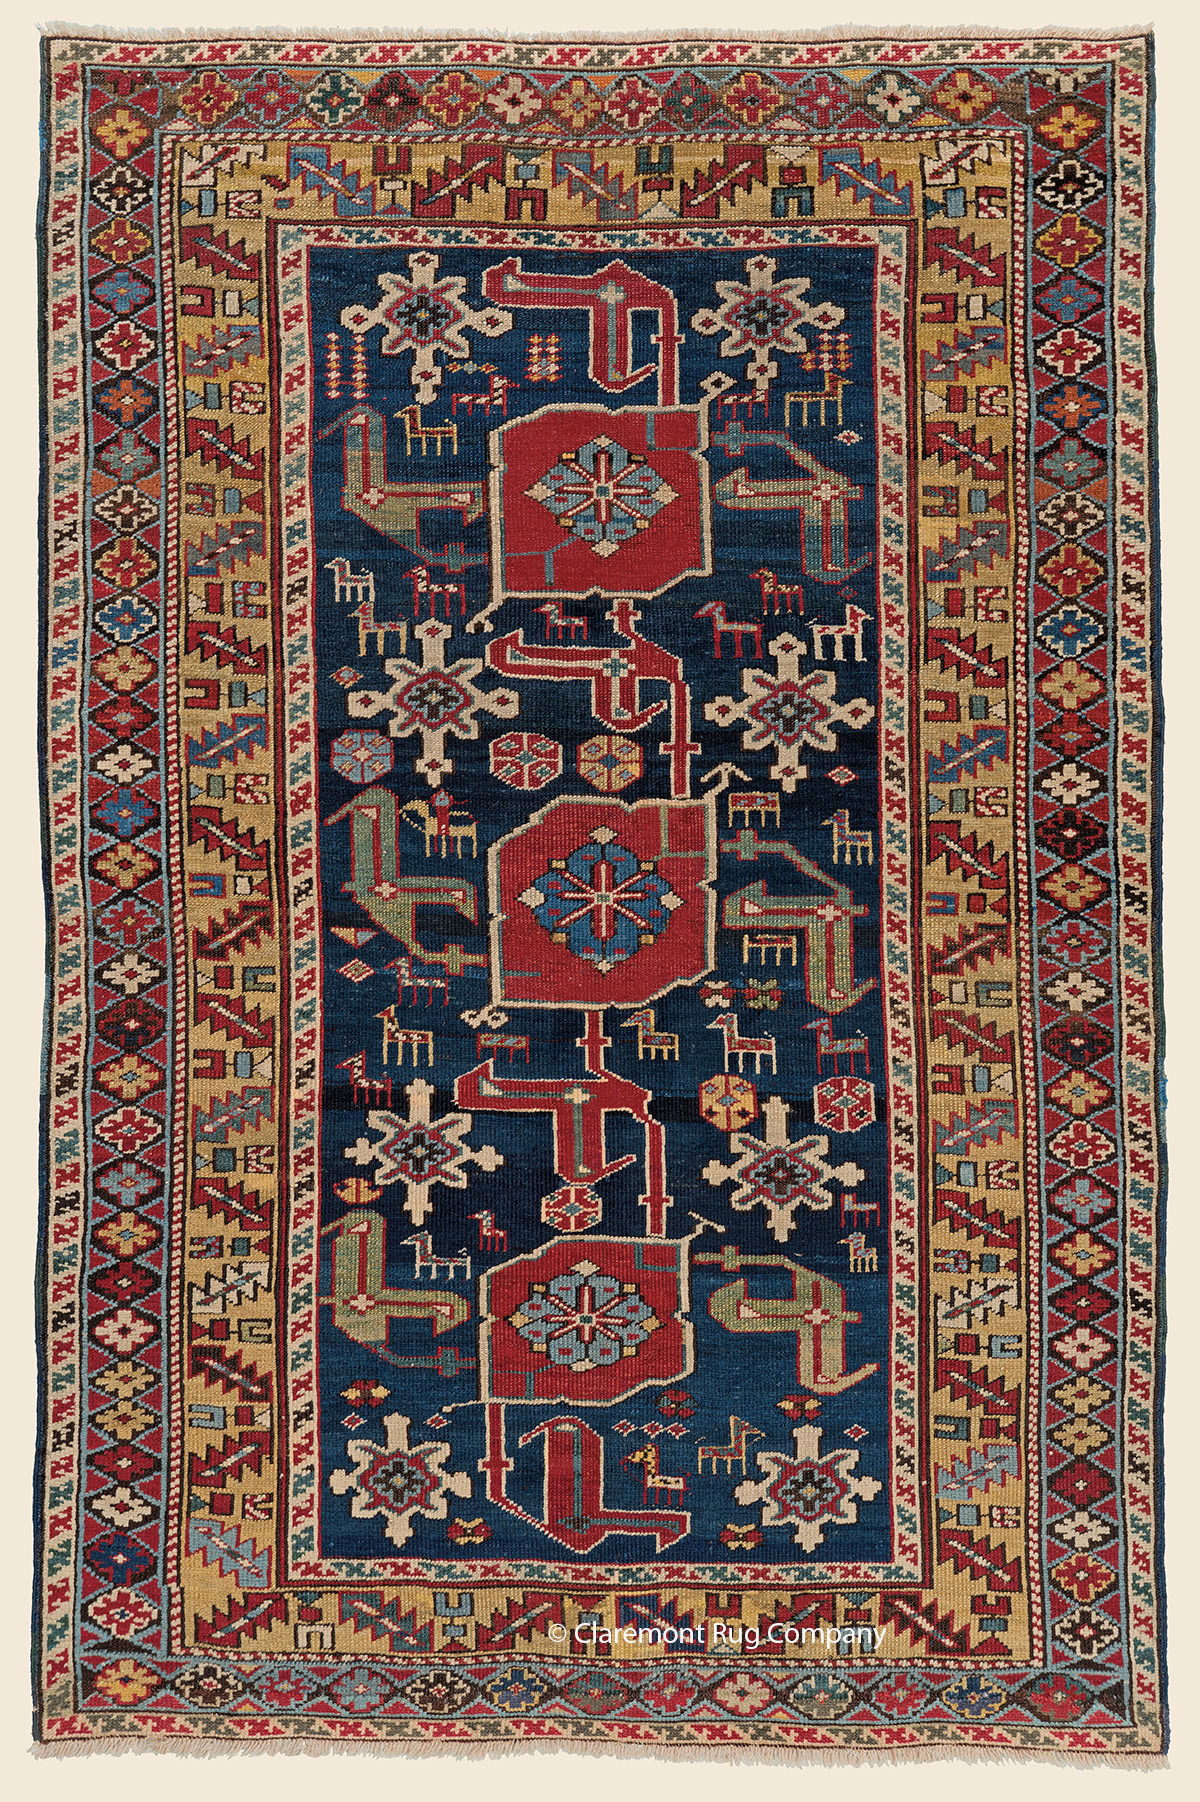 Circa 1875 Antique Caucasian Karagashli Kuba with tribal symbology 3ft x 5ft